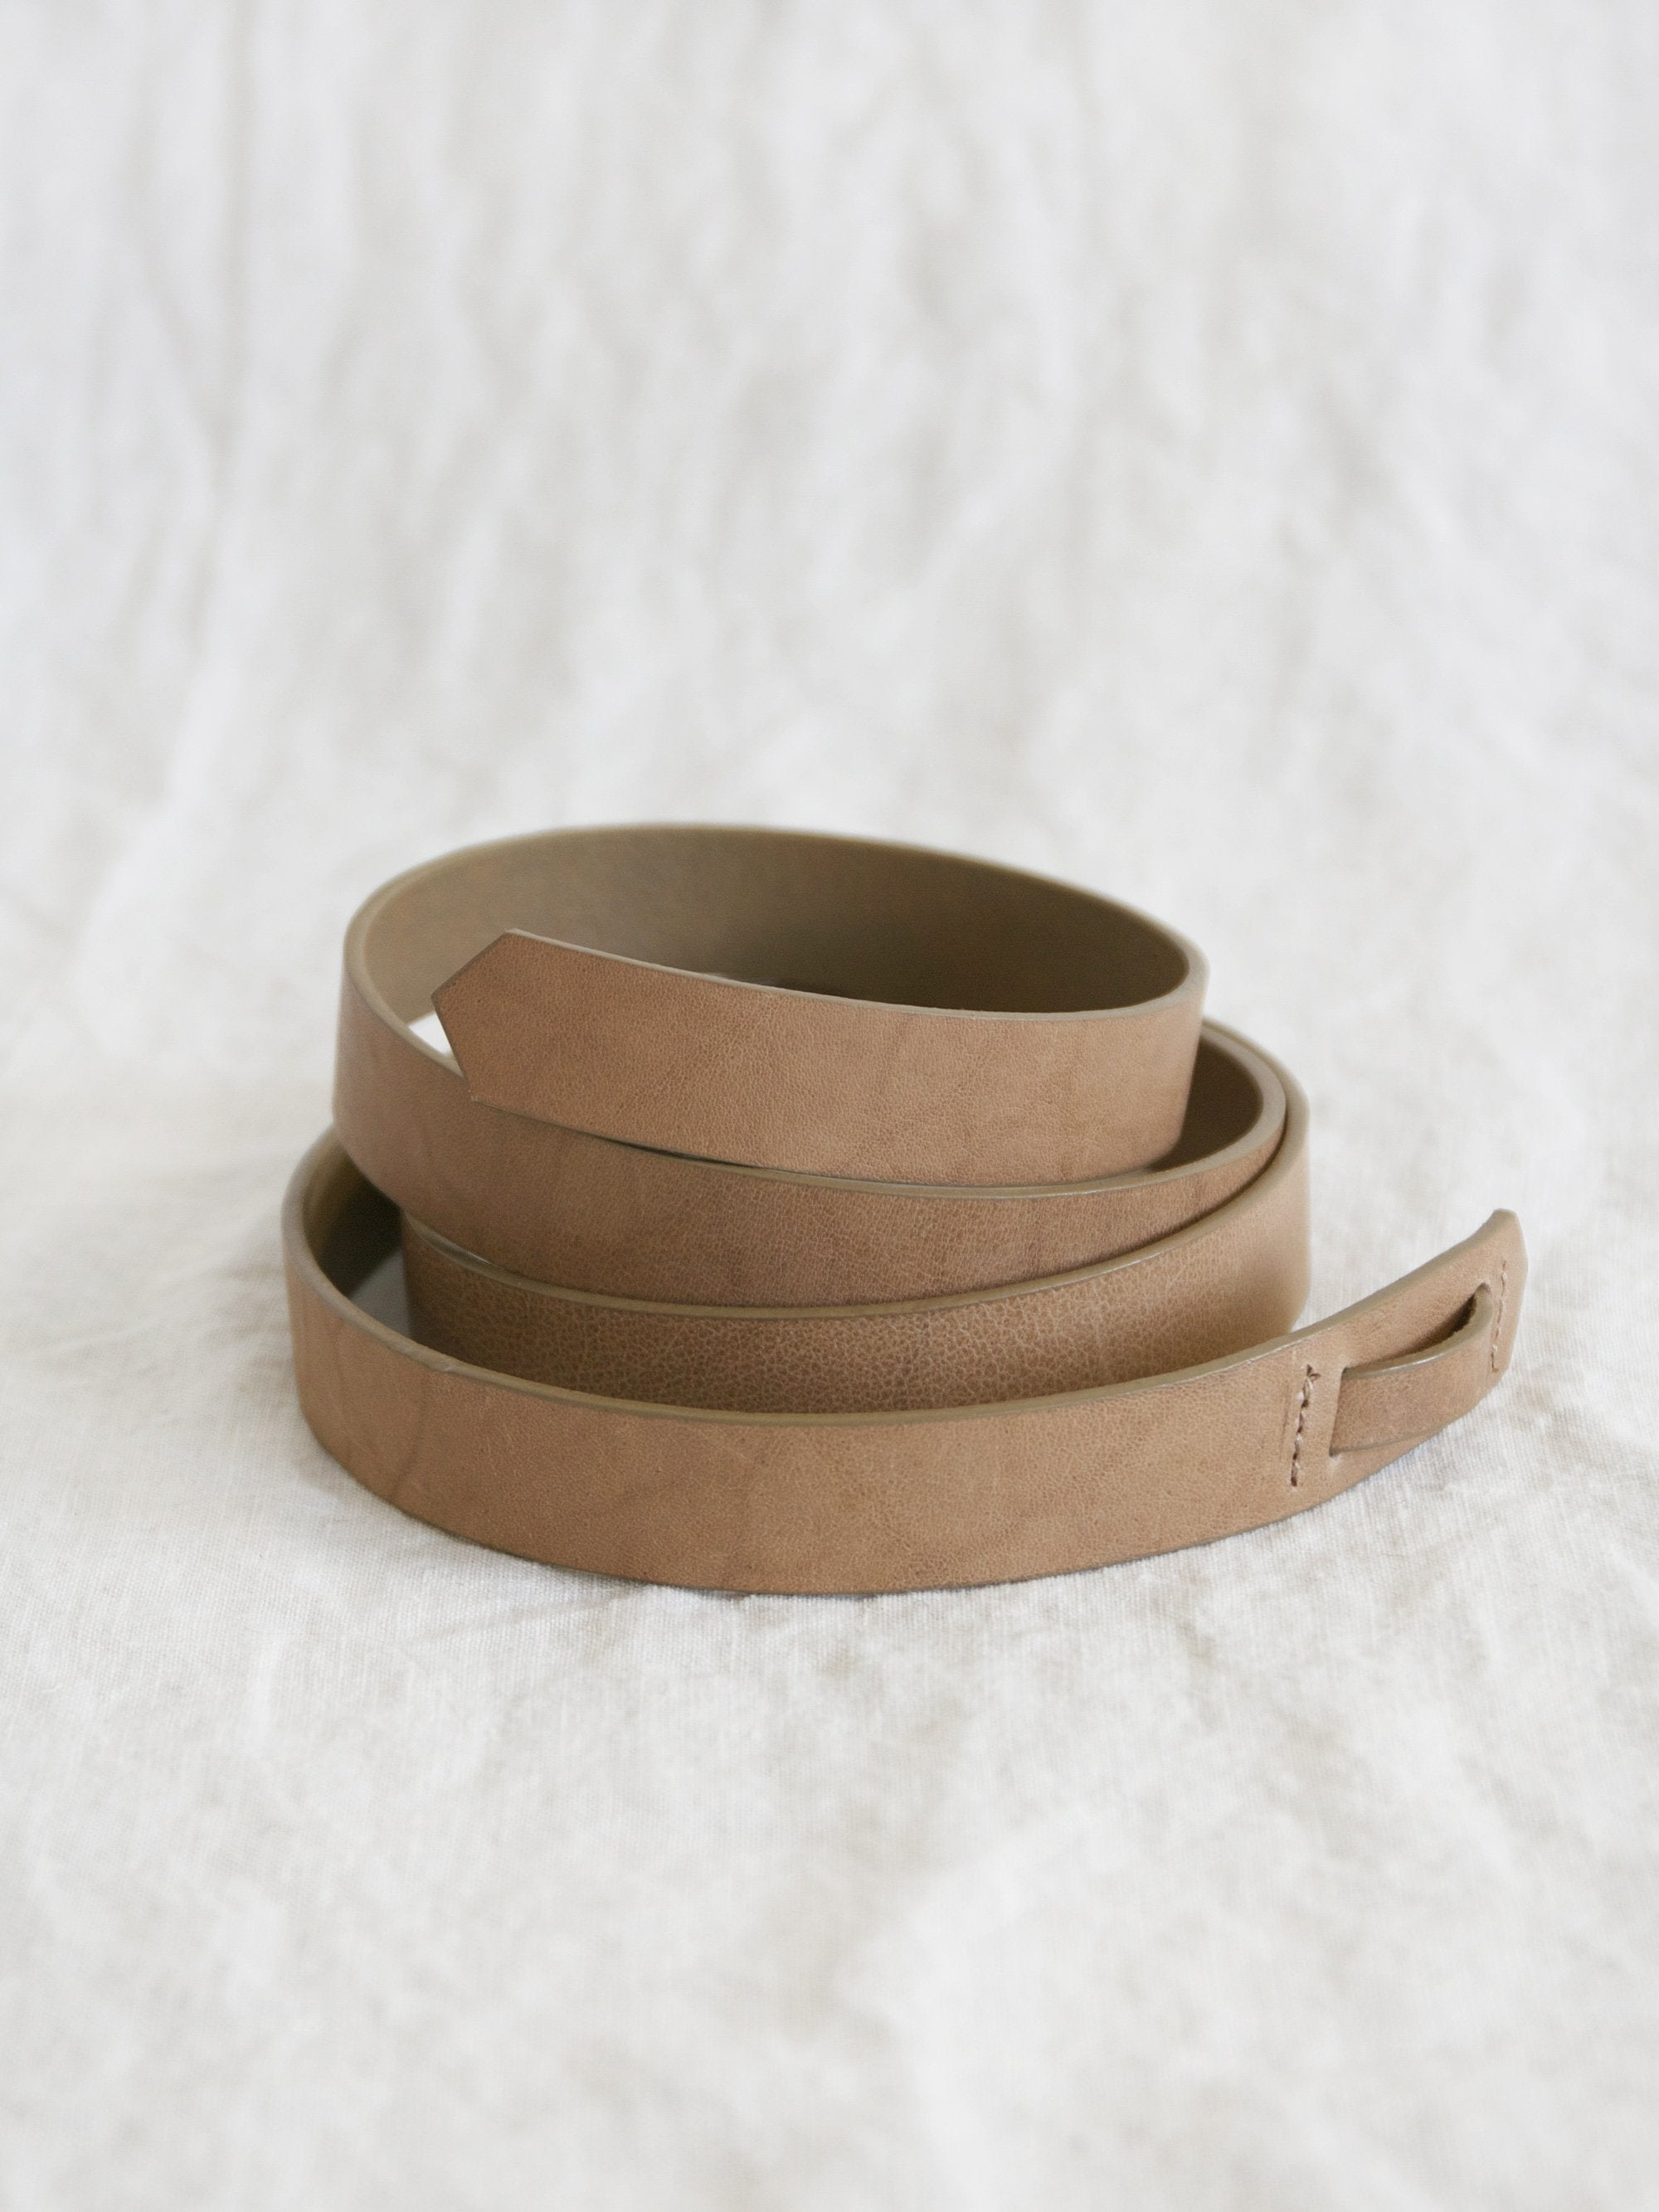 Namu Shop - Phlannel Buckleless Leather Belt - Ocher